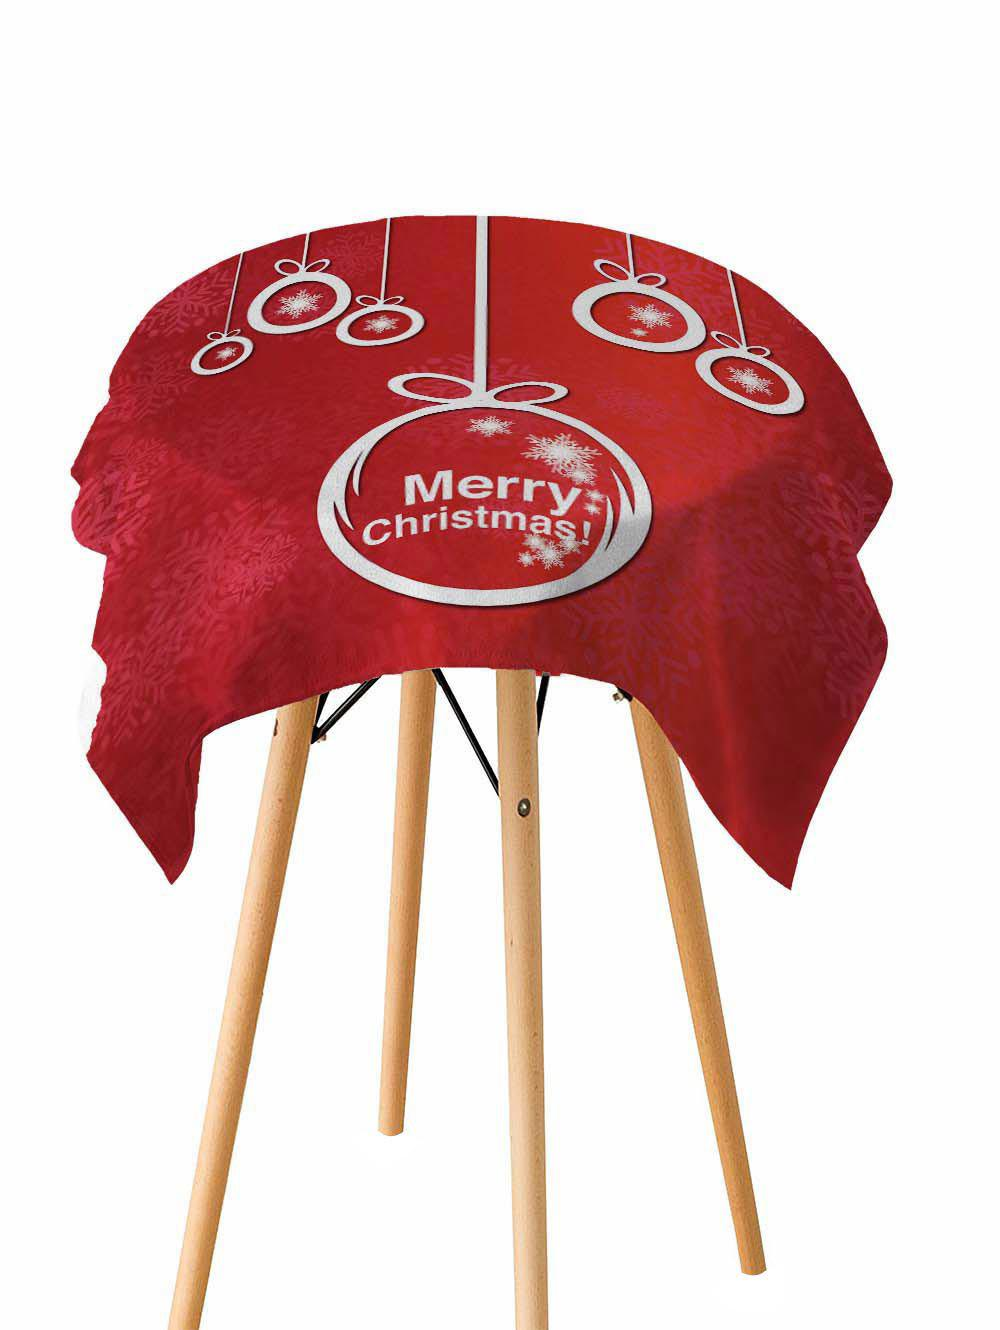 Discount Merry Christmas Printed Fabric Waterproof Table Cloth